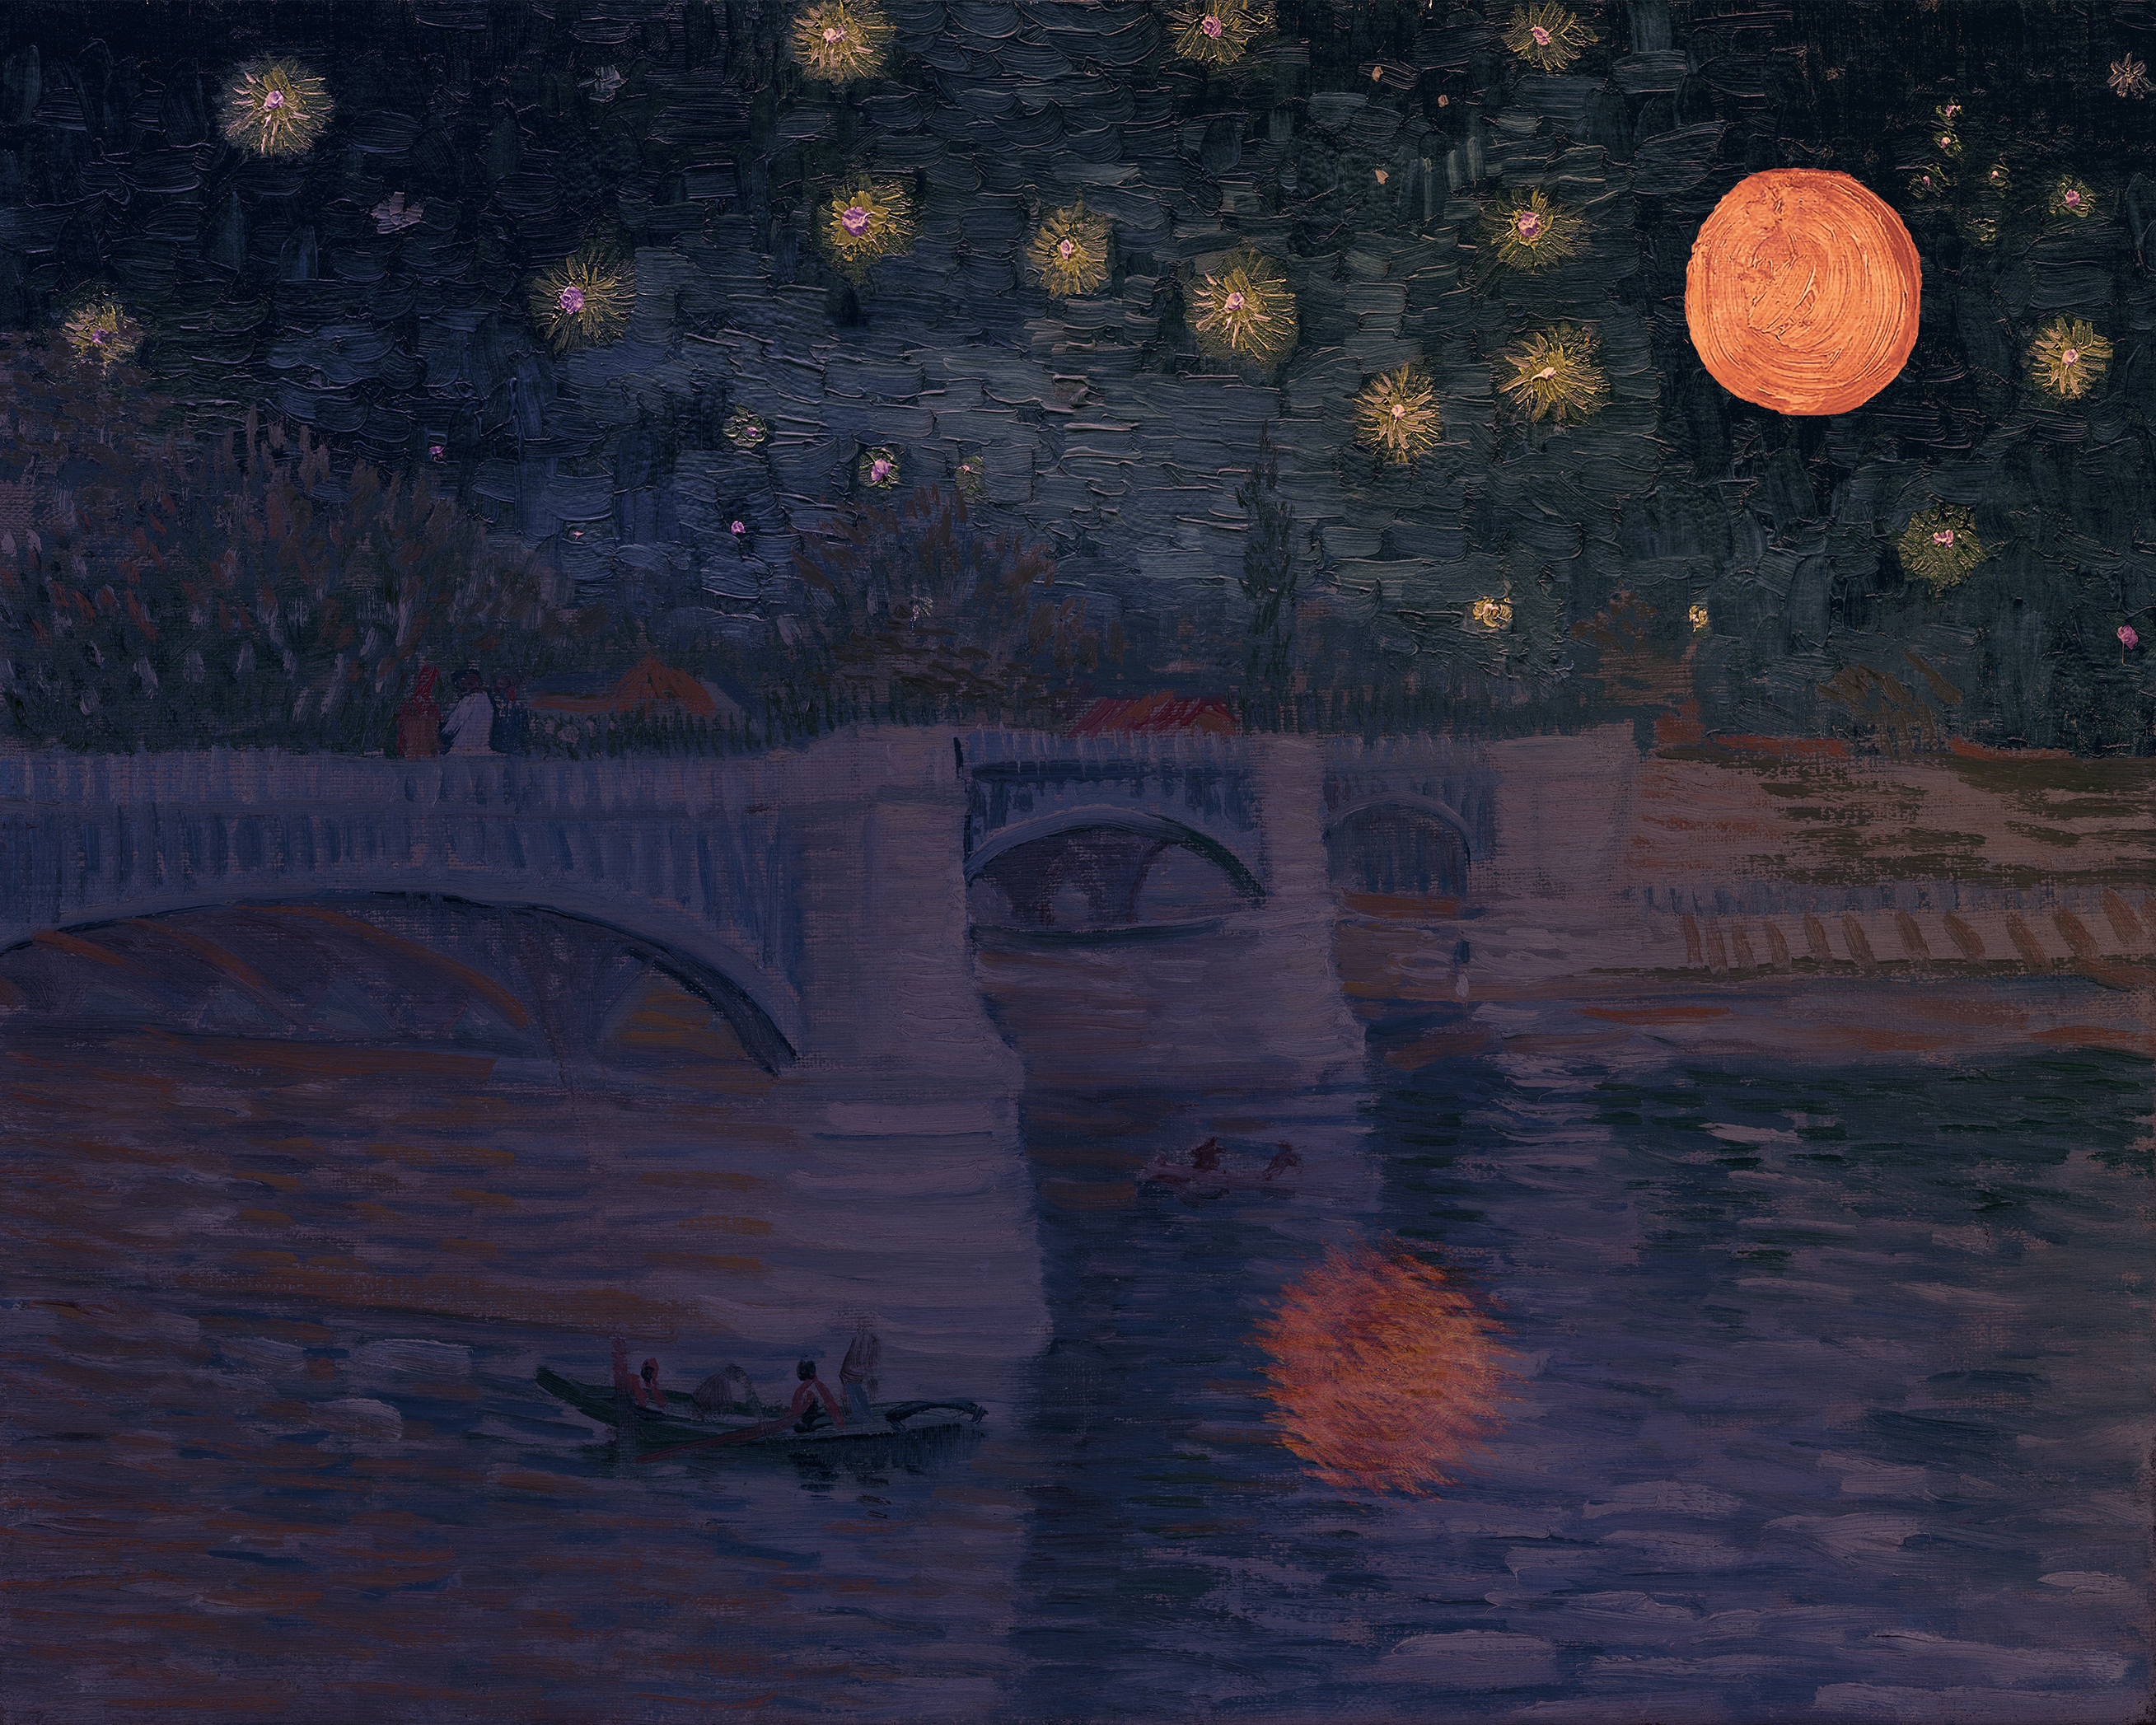 a bridge over water under a dark blue sky with twinkling orange stars and a big red blood moon